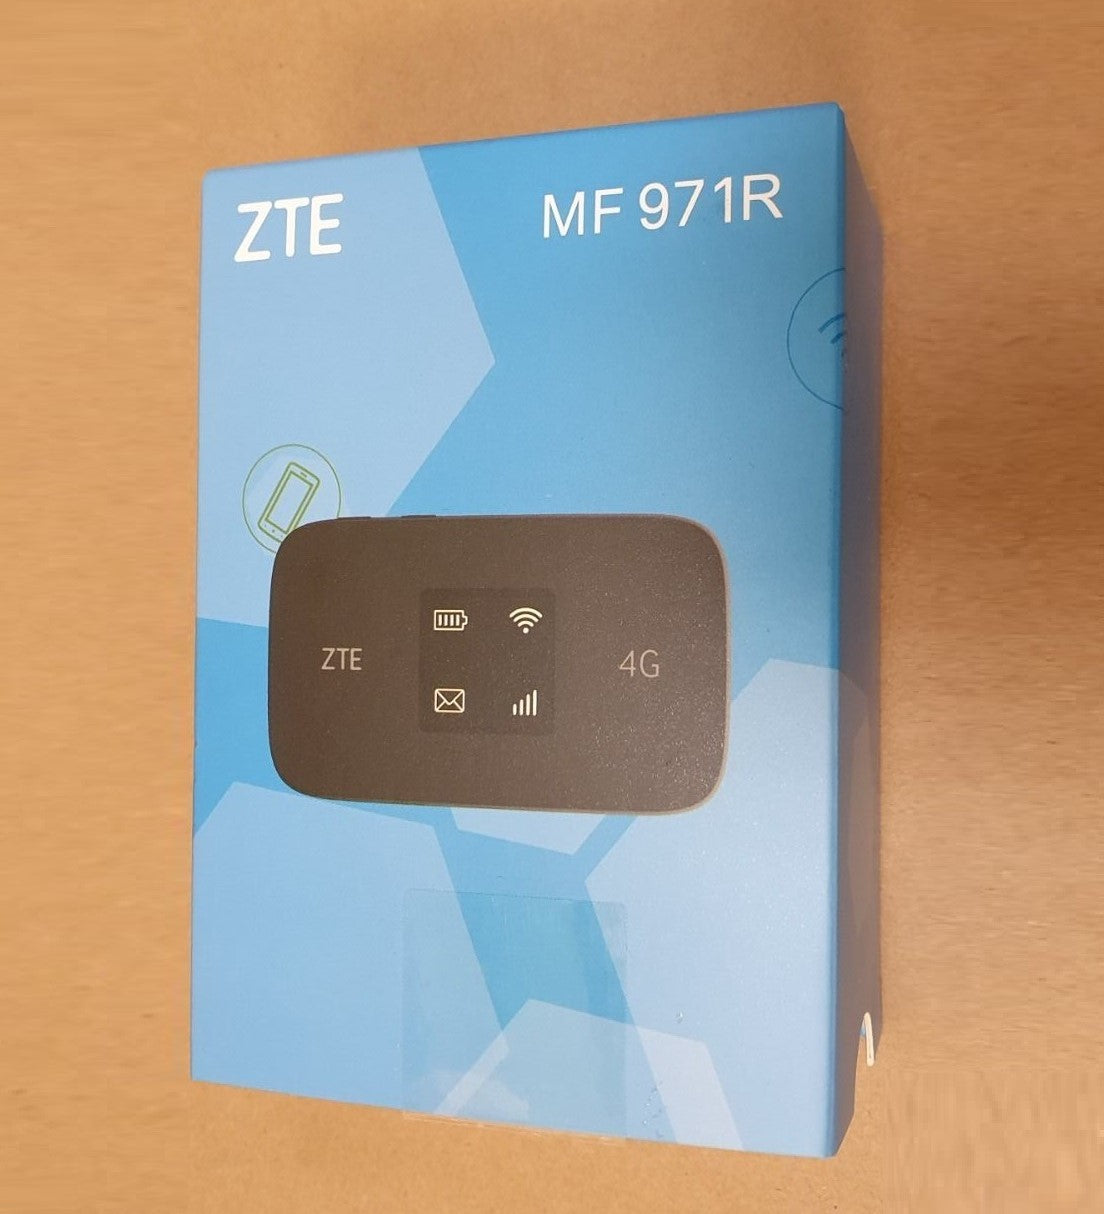 Unlocked ZTE MF971R Mobile Hotspot LTE 4G+ WiFi Router (Europe, Asia, Latin Caribbean, Middle East and Africa)